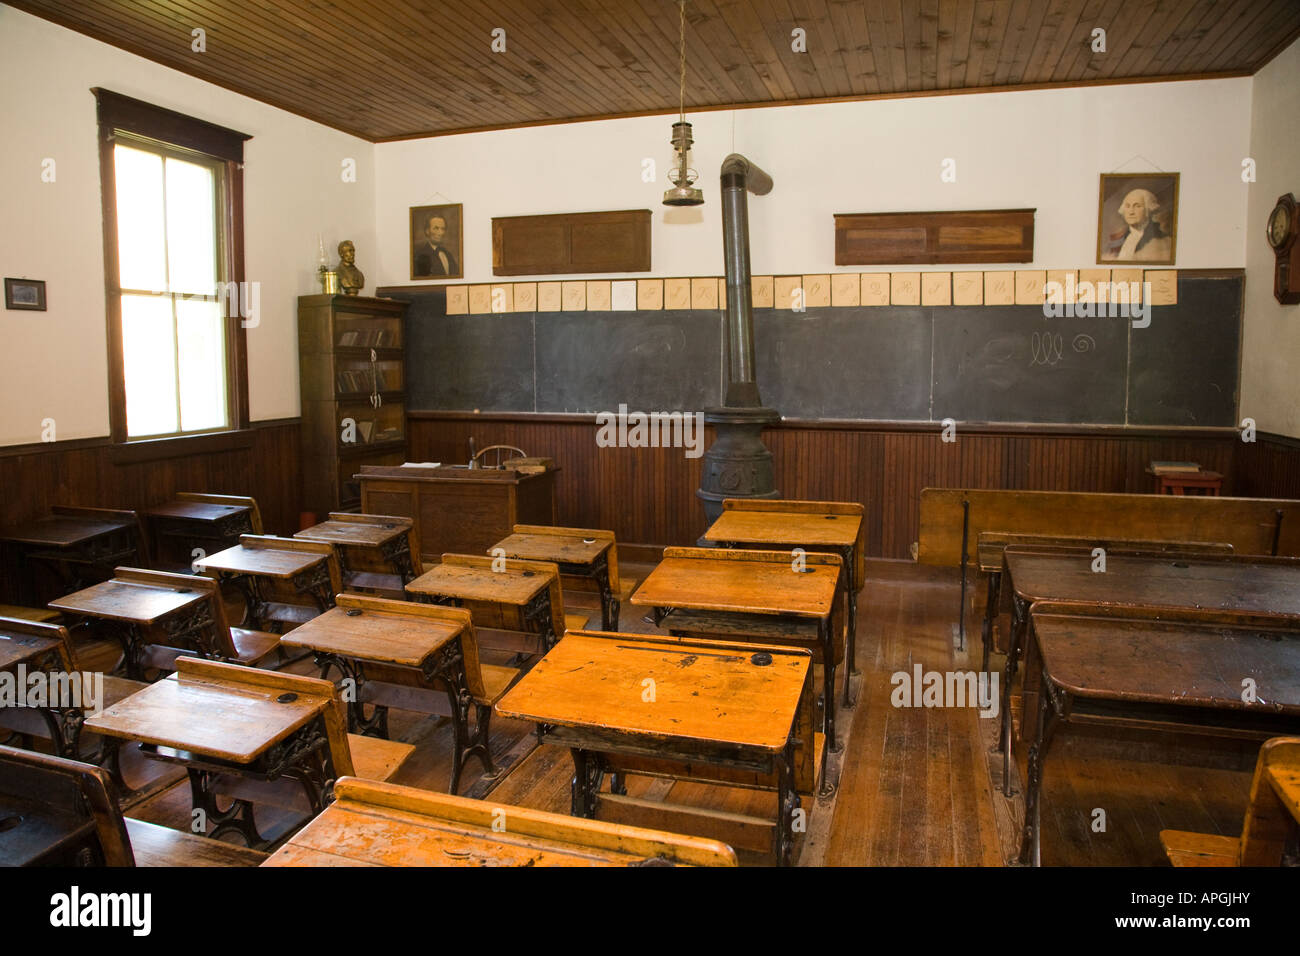 ILLINOIS Rockford Wooden desks with inkwell for students old fashioned schoolhouse pot bellied stove Midway Village - Stock Image